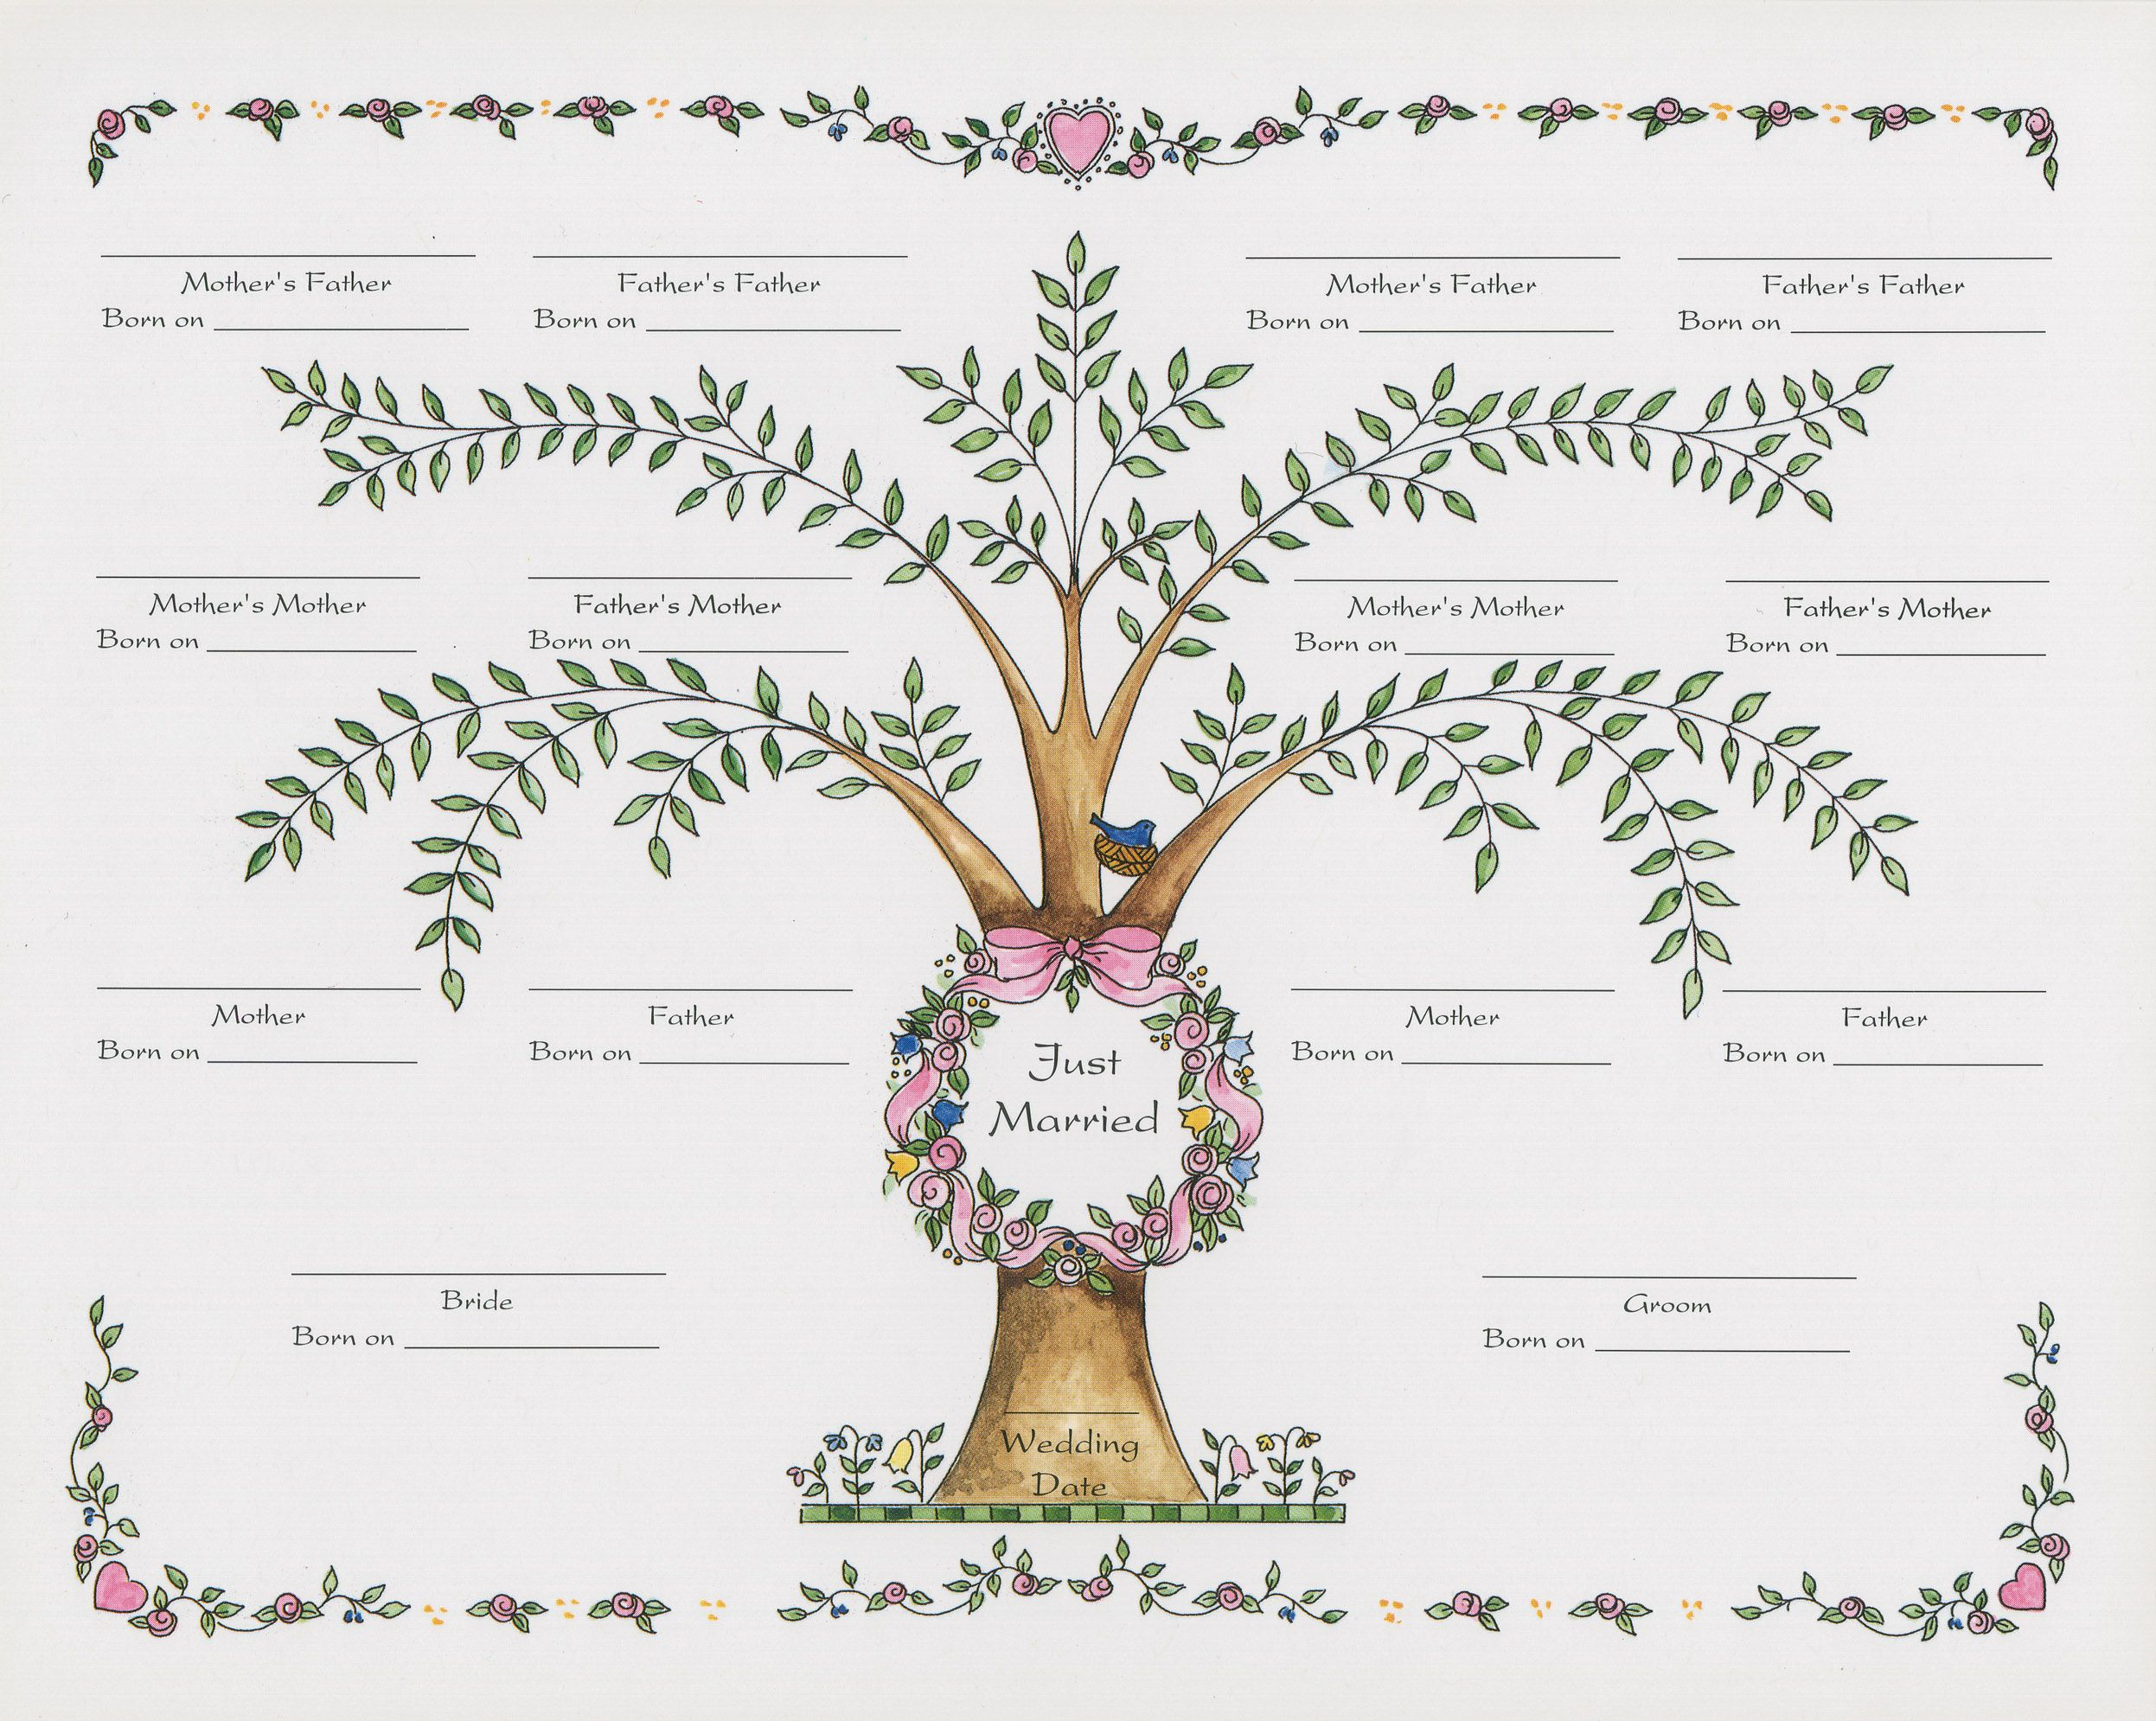 Fun Family Tree Template With Hearts  Genealogy Research Sites